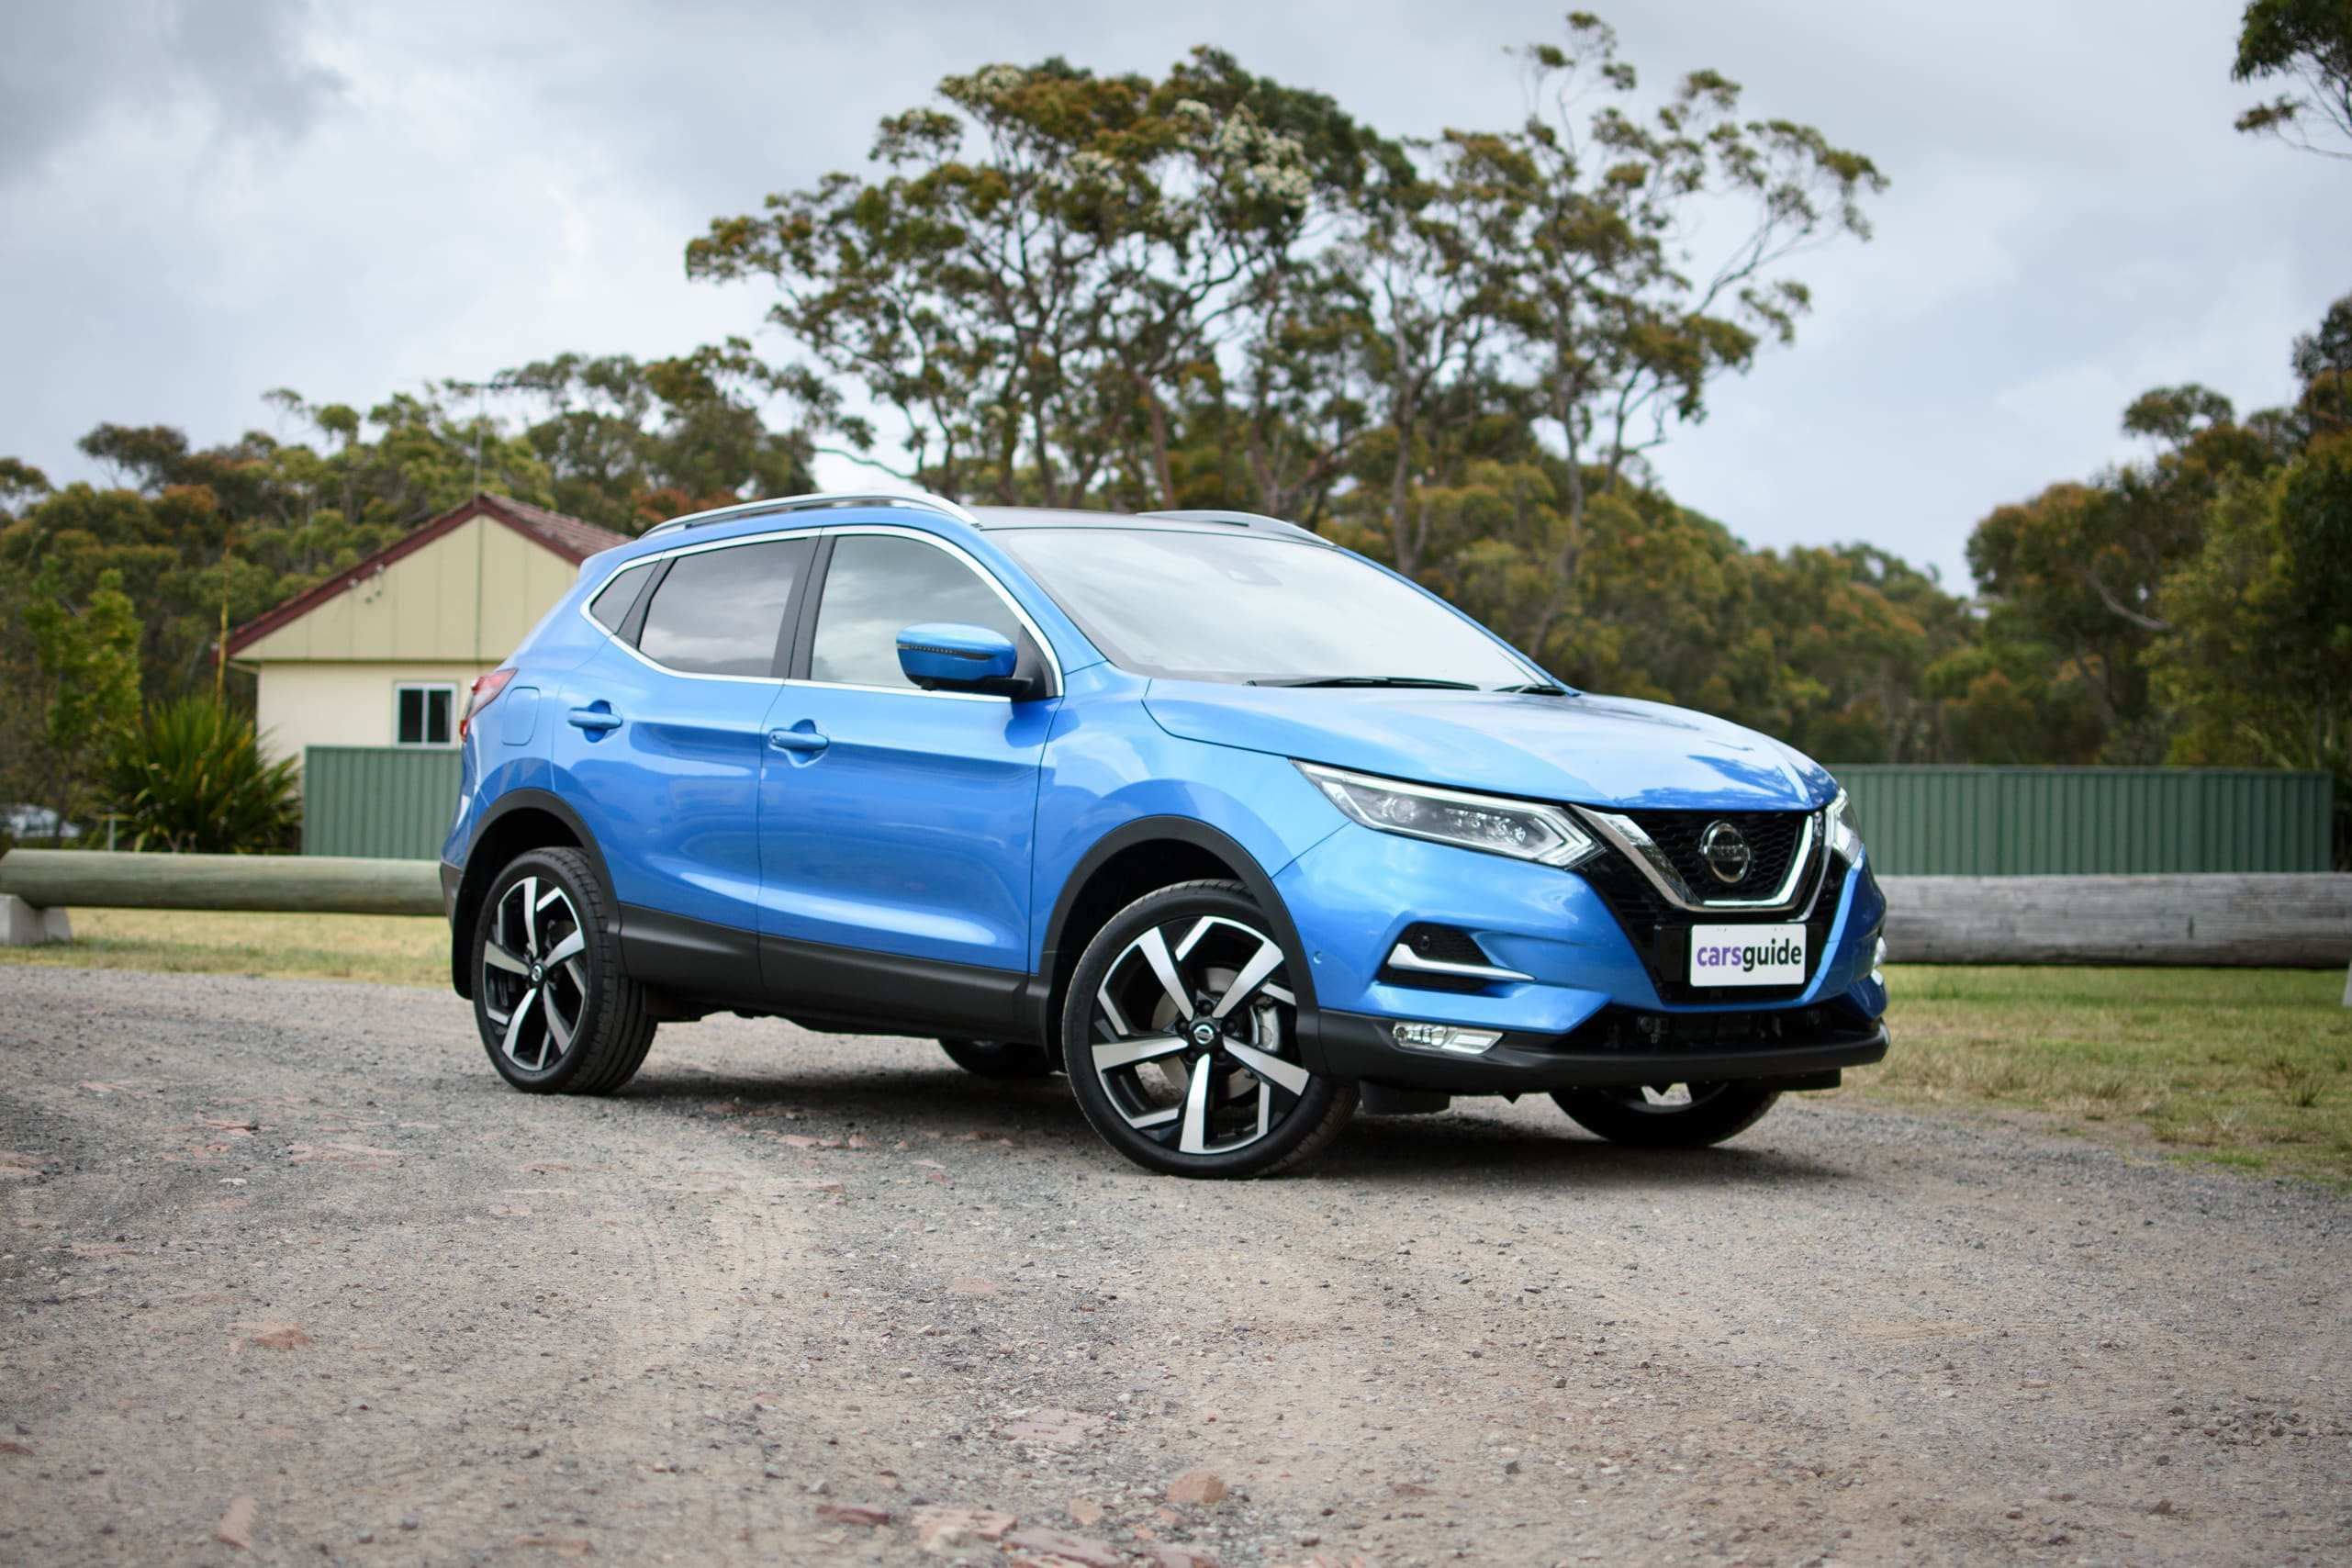 37 Best Nissan Qashqai 2019 New Review